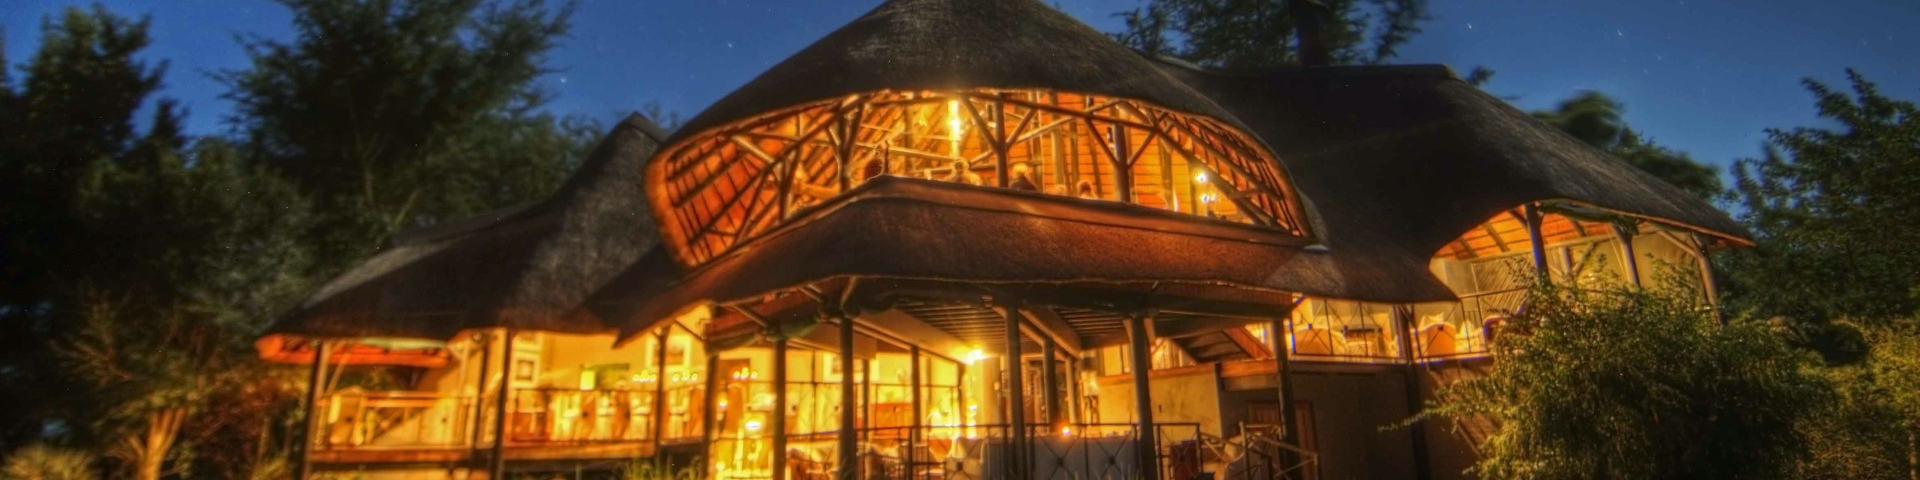 Banner accommodation namibia chobe savanna lodge